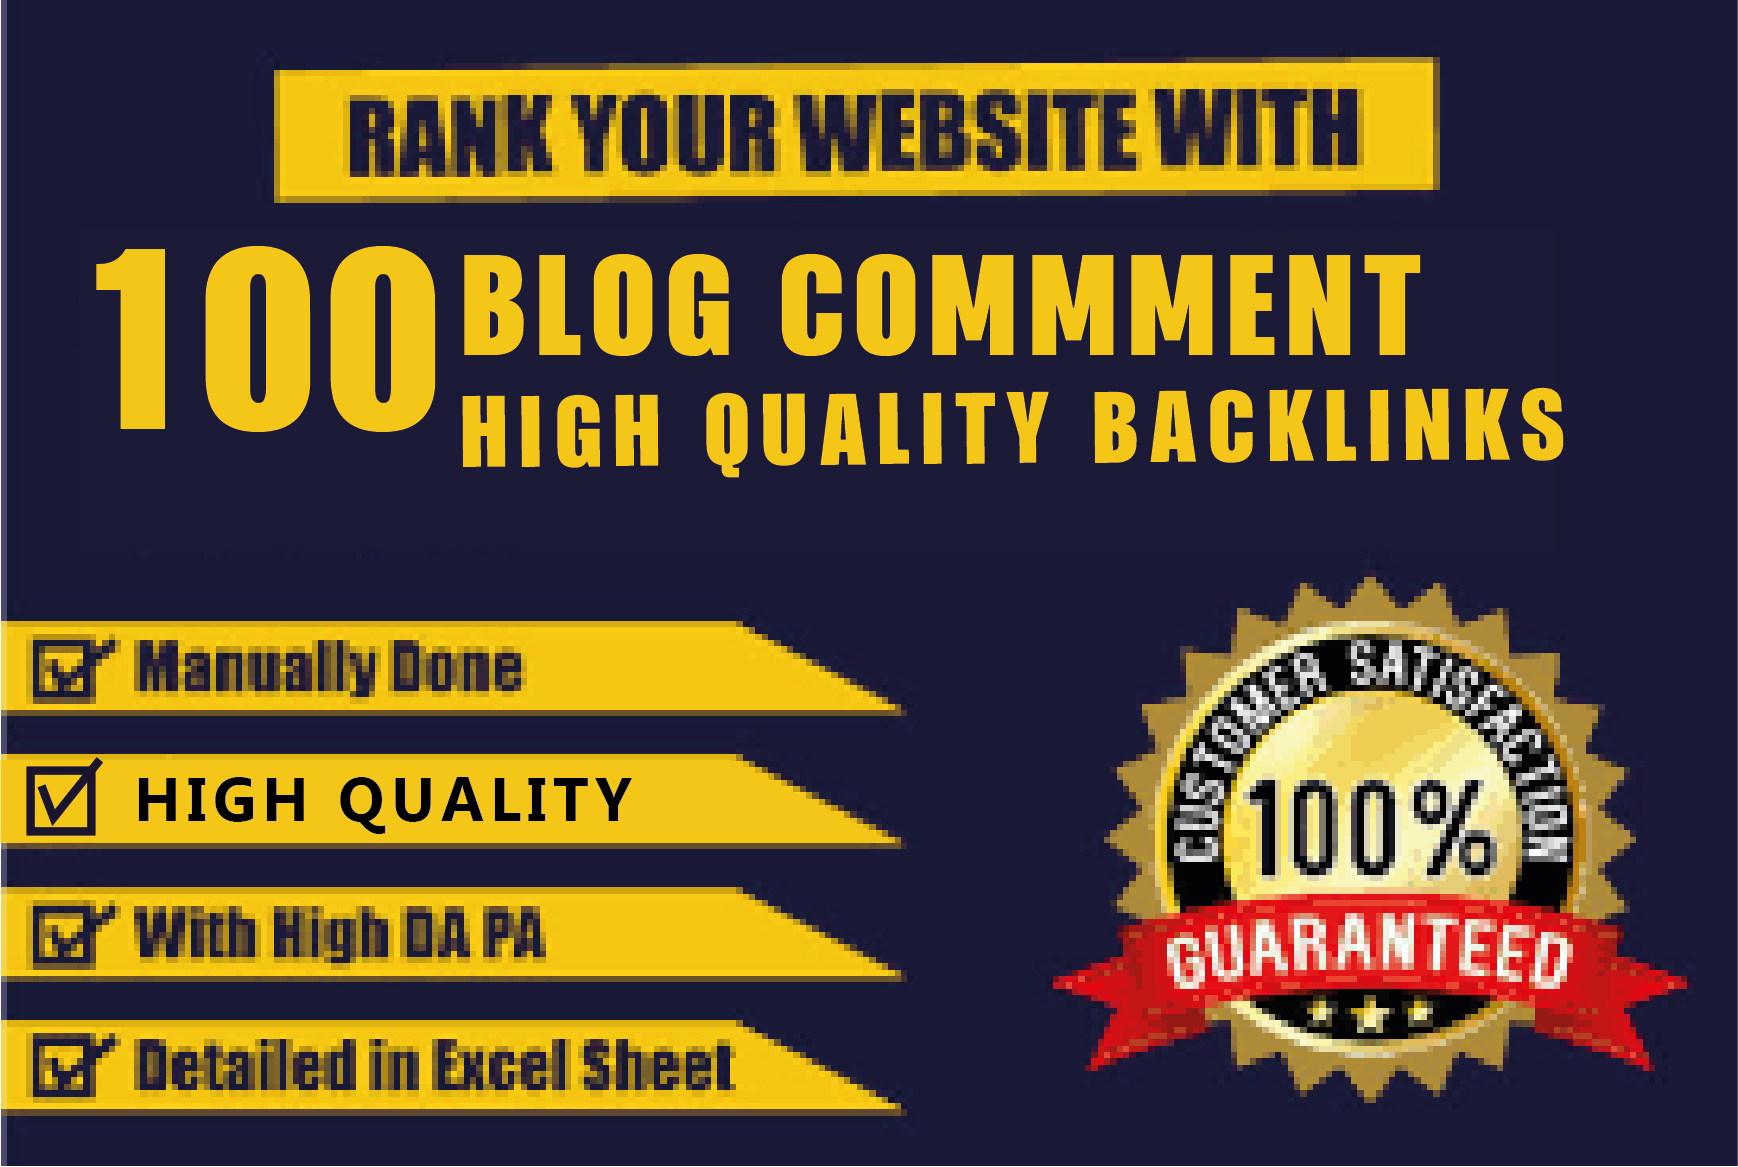 I will provide 100 blog comments high quality backlinks